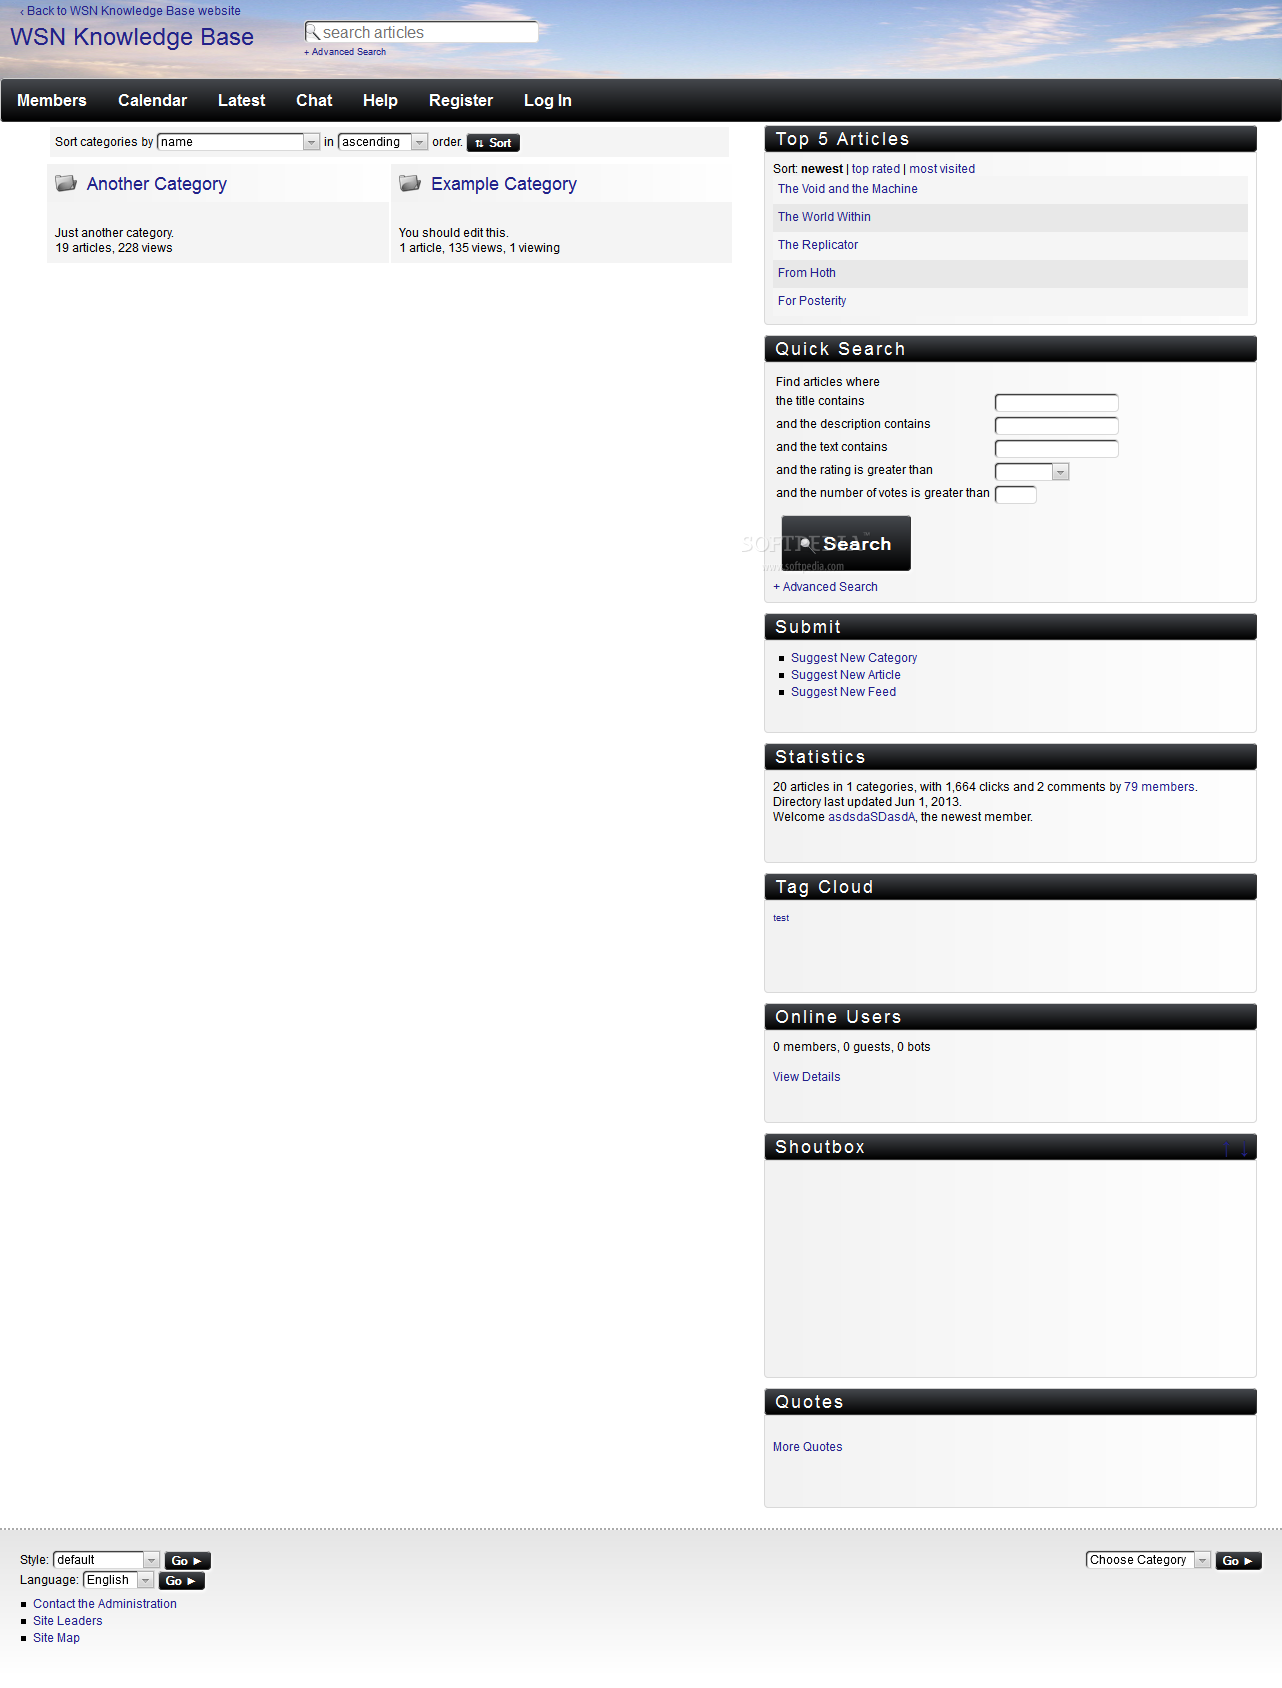 WSN Knowledge Base - A basic theme is included for the site's frontend, for easy FAQ display and navigation